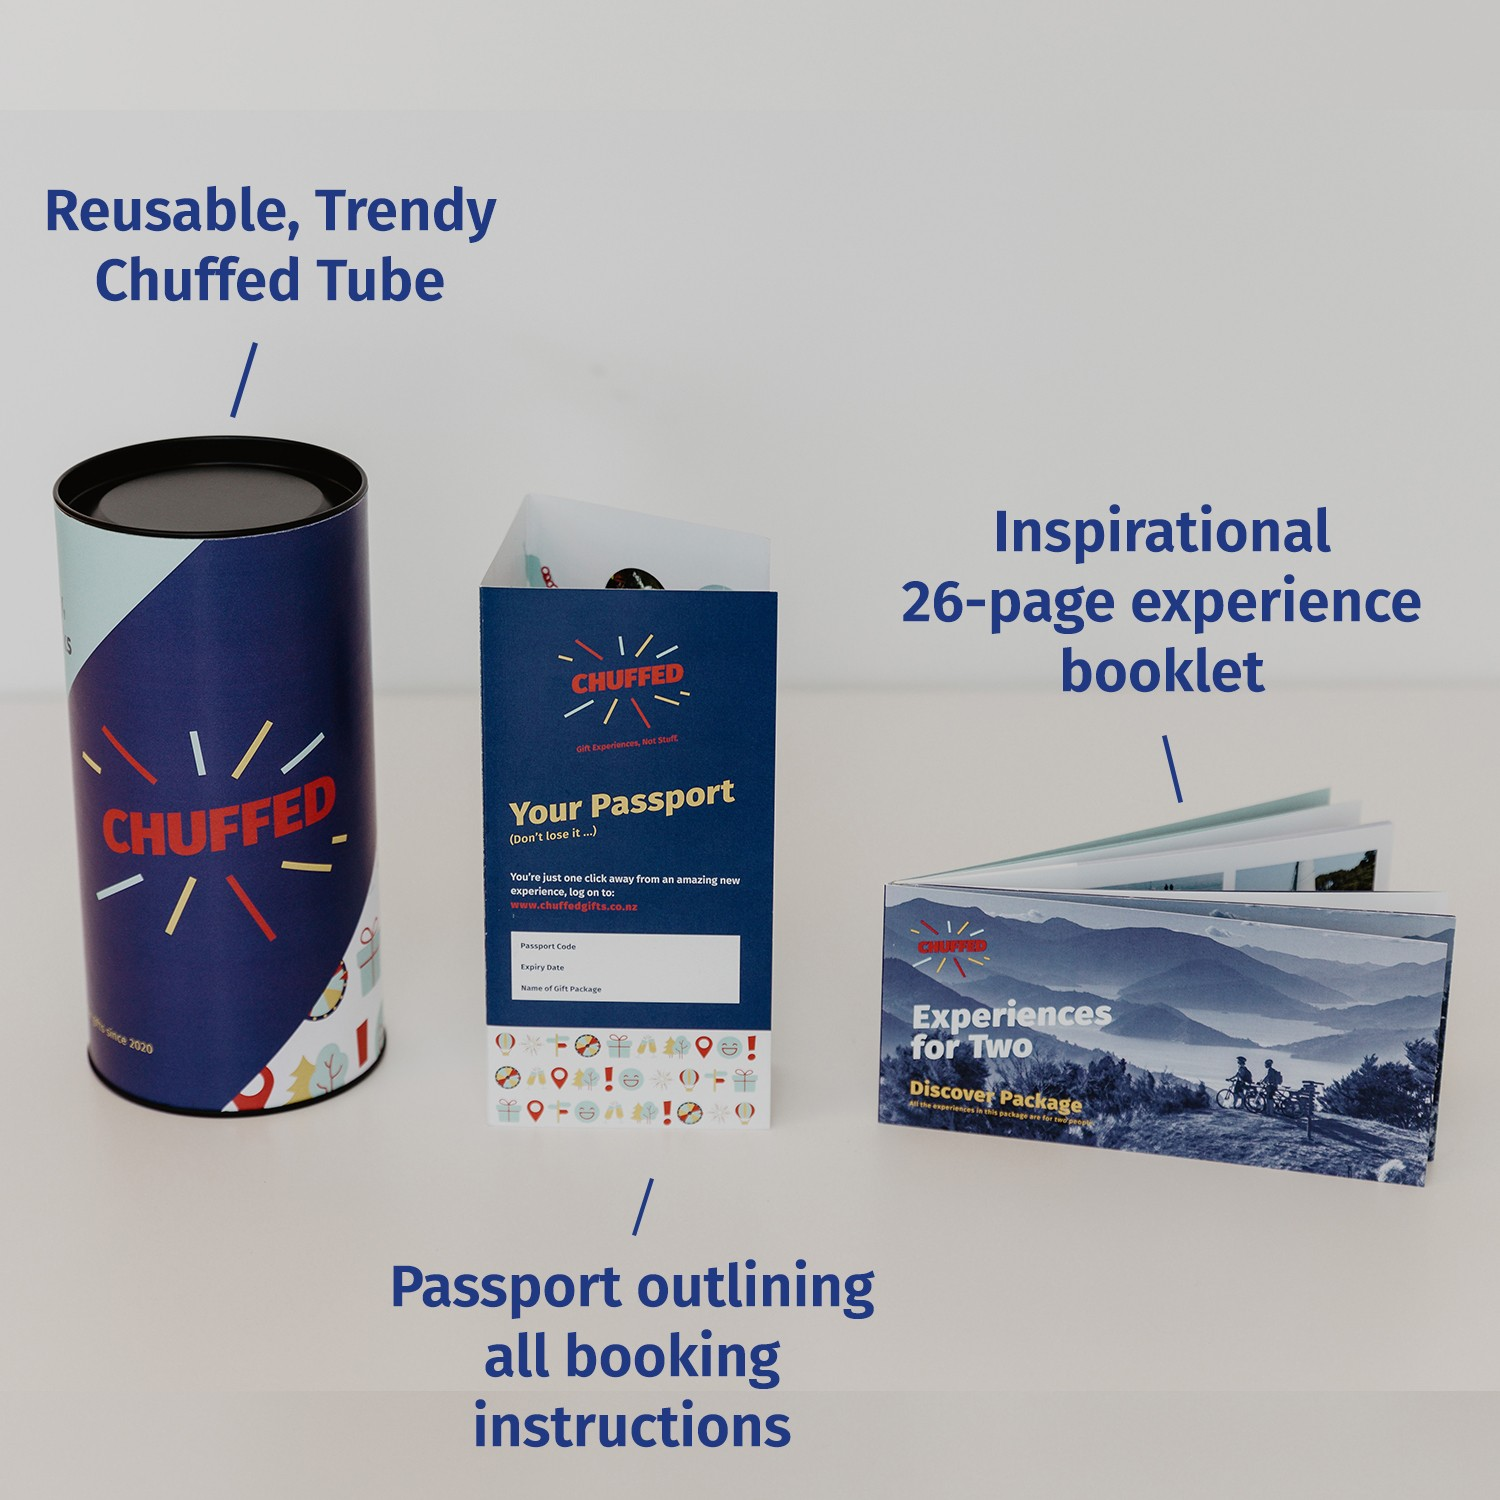 Experiences For Two Discover Package